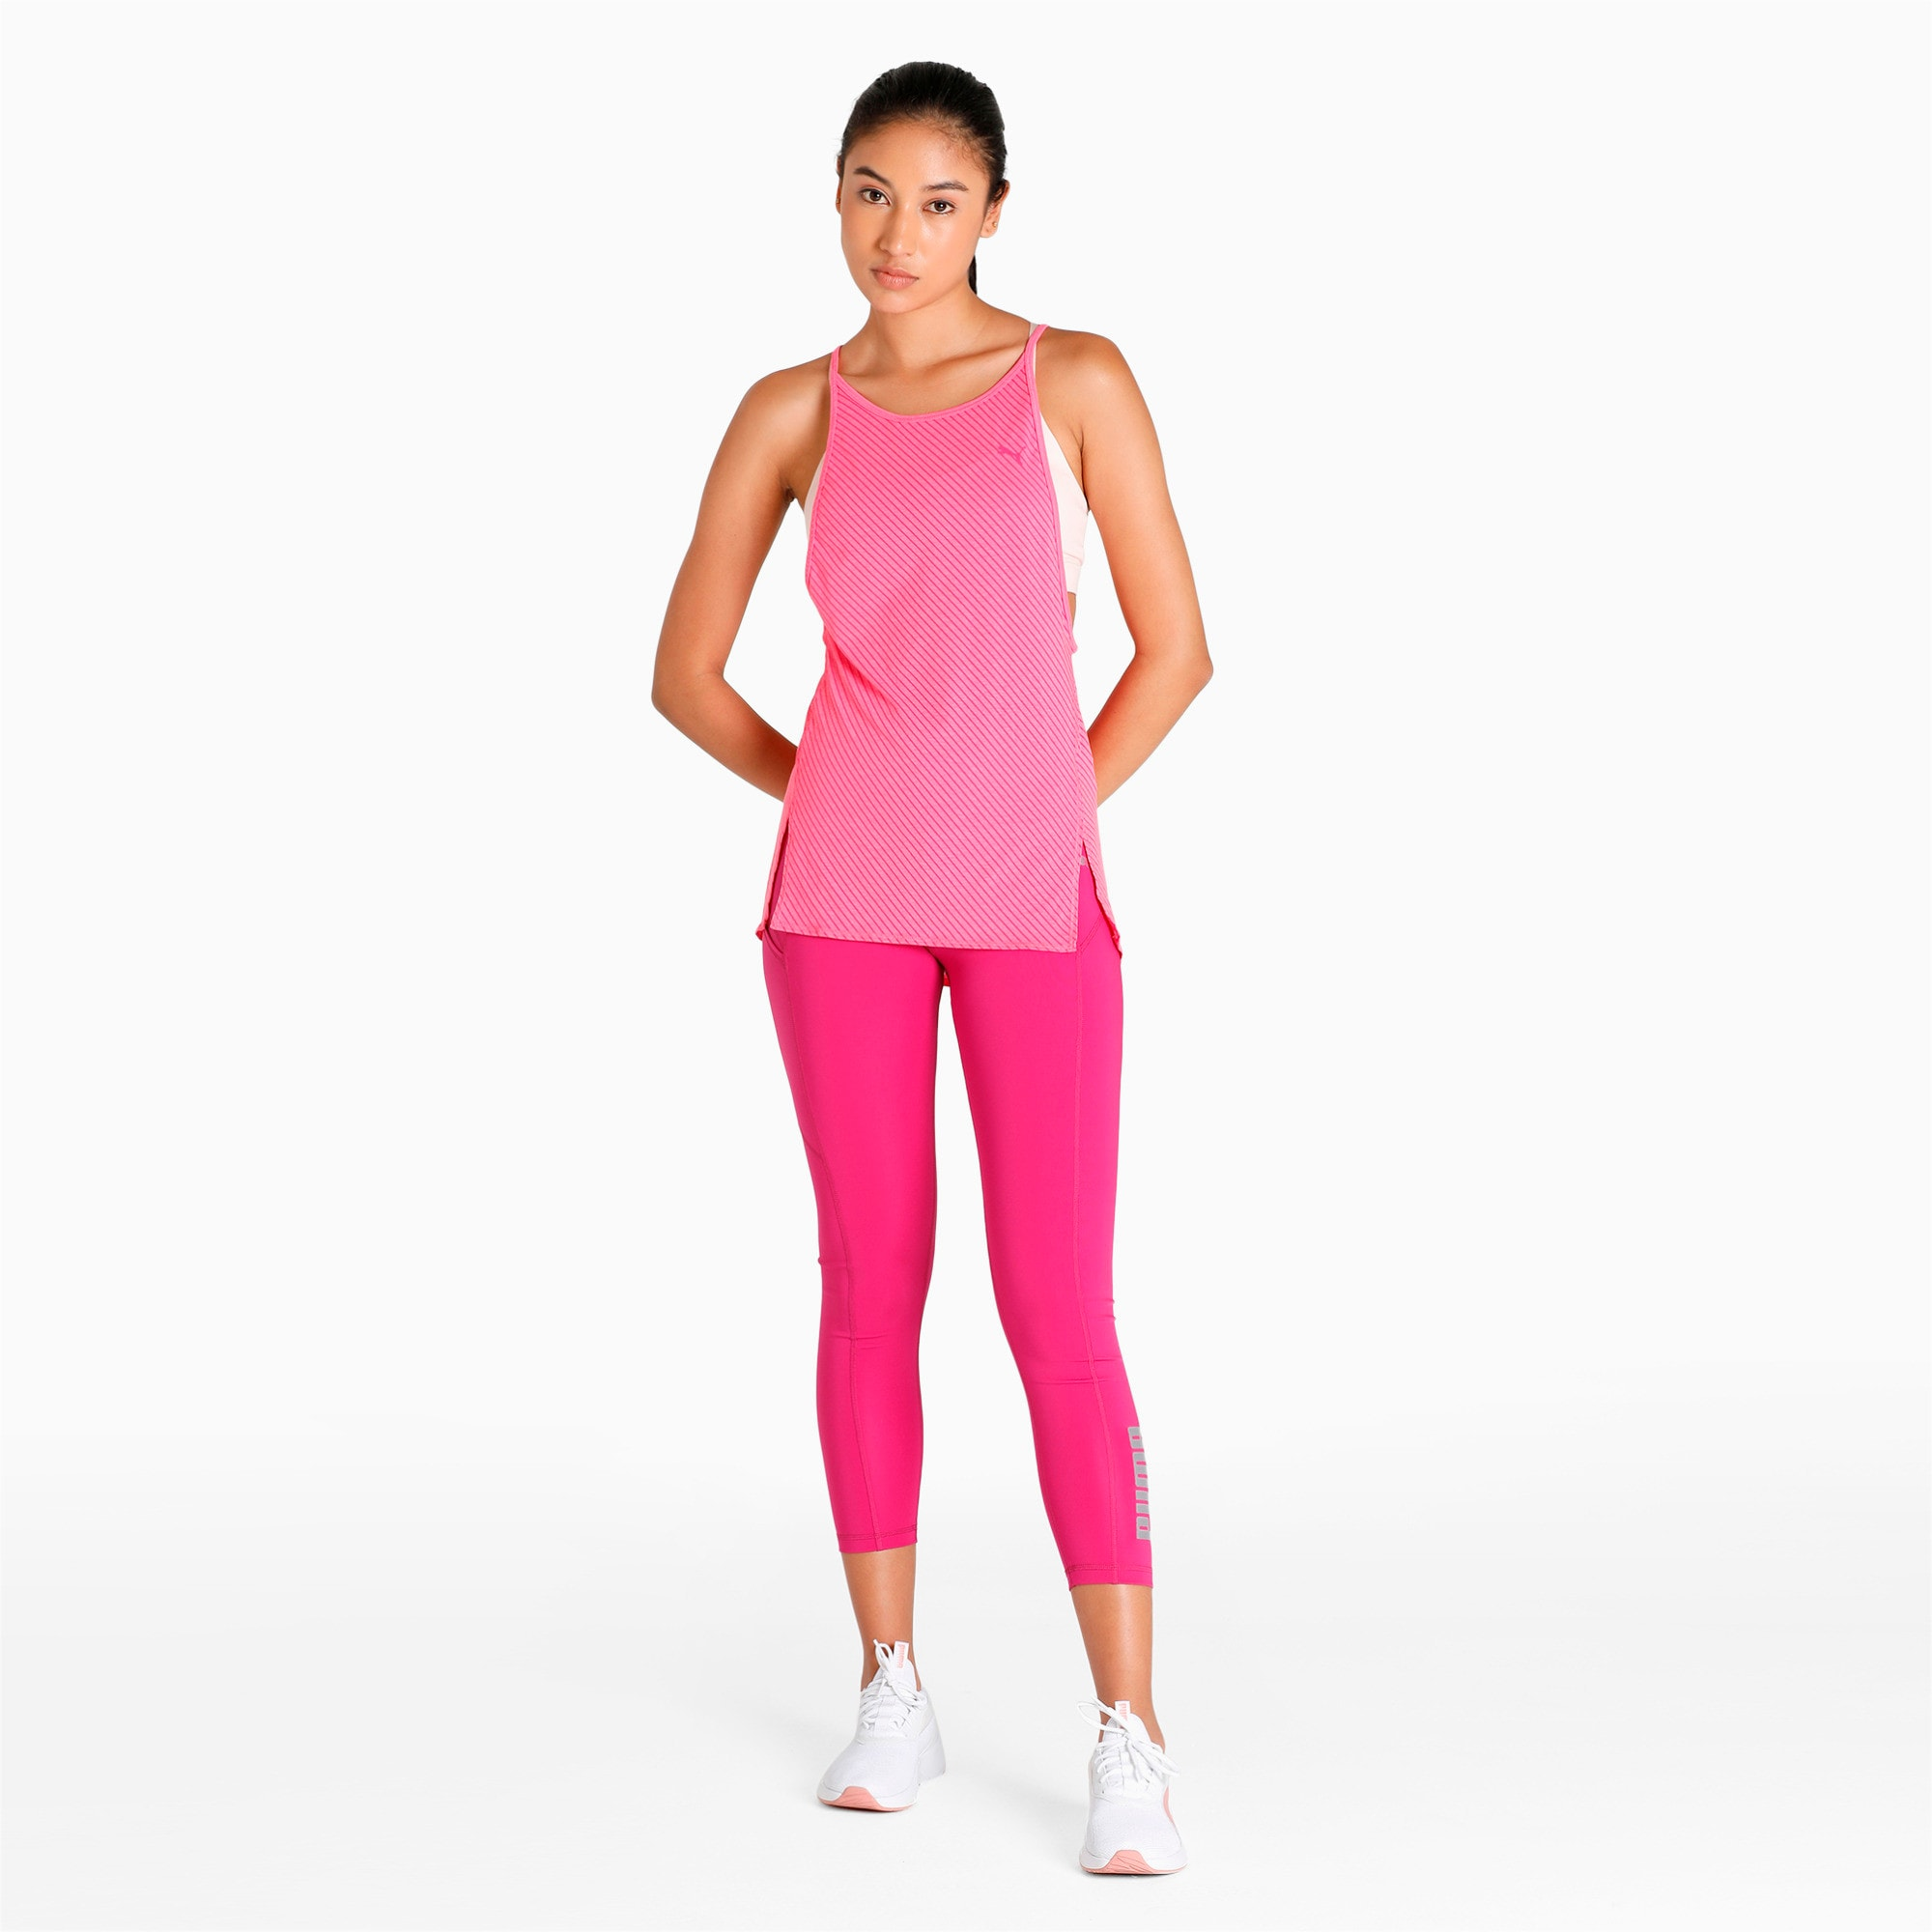 Thumbnail 1 of Active Training Women's Dancer Draped Tank Top, knockout pink heather-stripe, medium-IND